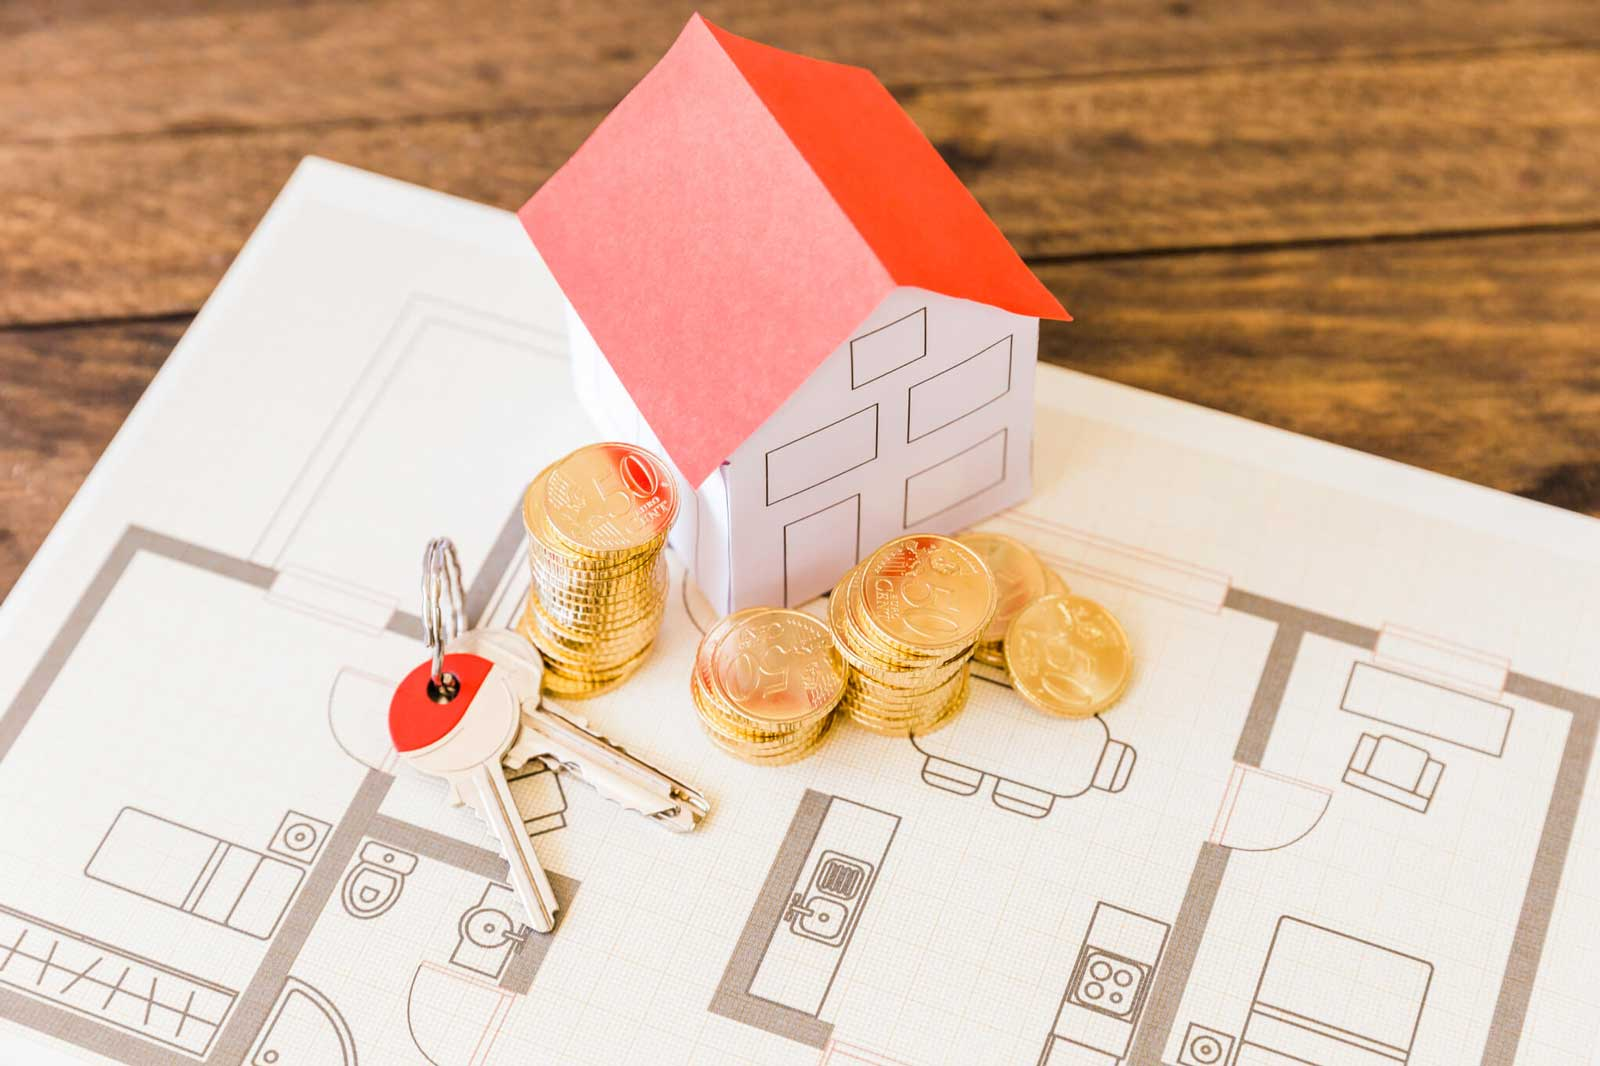 Are you looking for a 0$ down payment option?